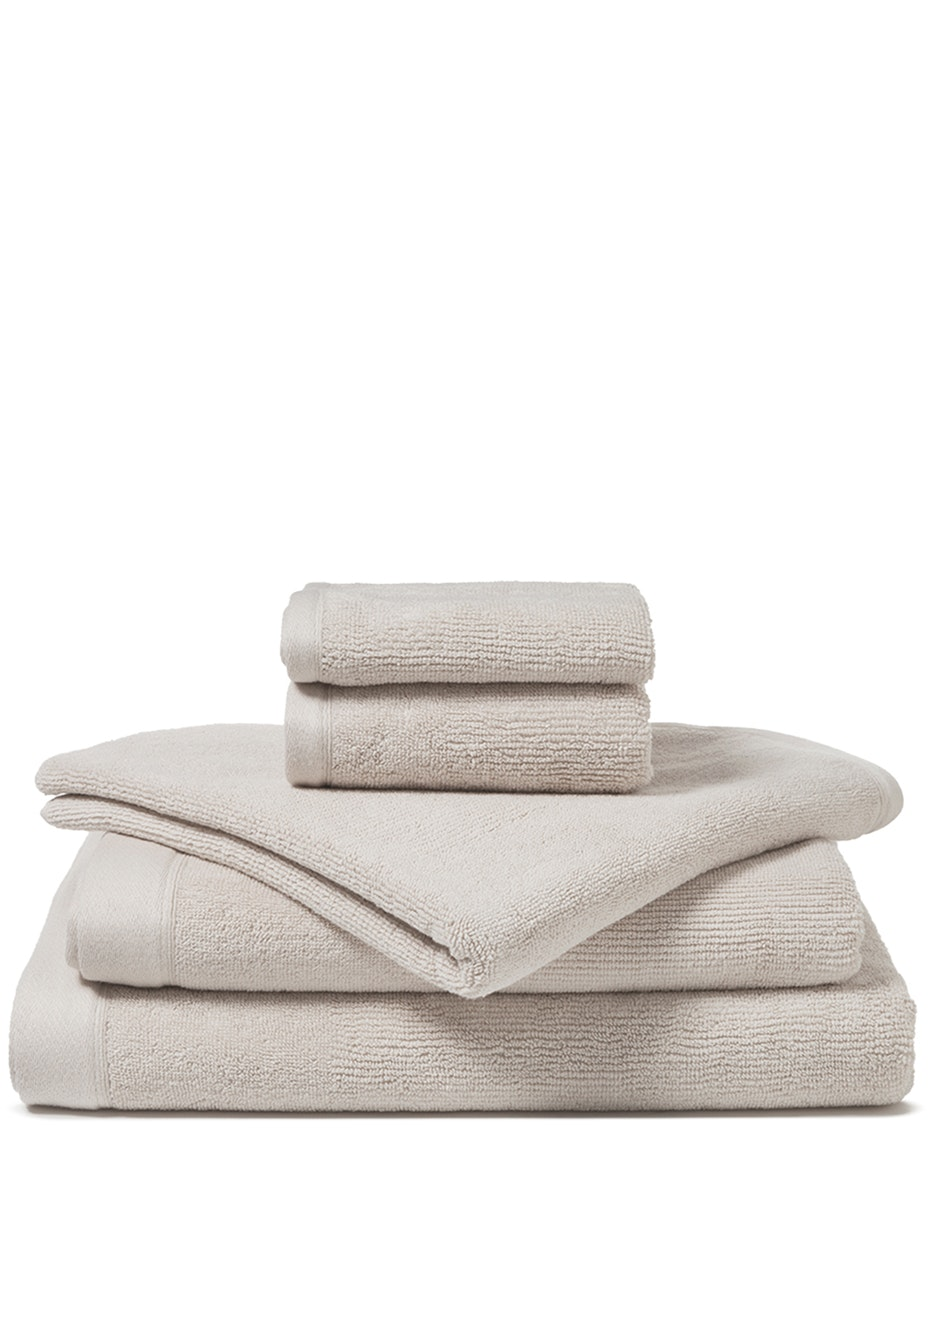 Canningvale - Corduroy Rib Hand Towel Turtledove